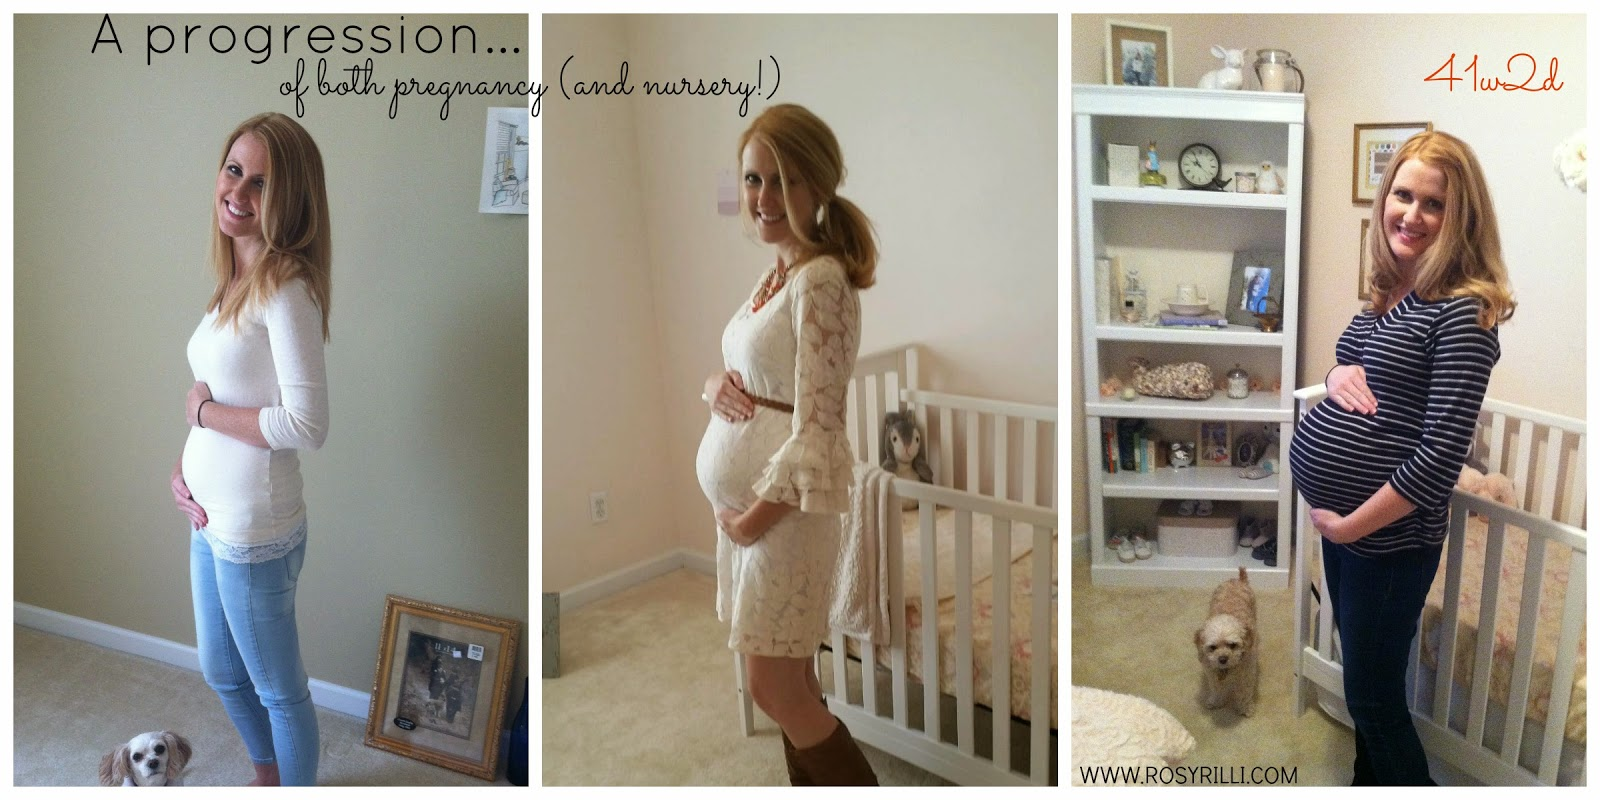 ROSYRILLI.COM My pregnancy progression photo idea